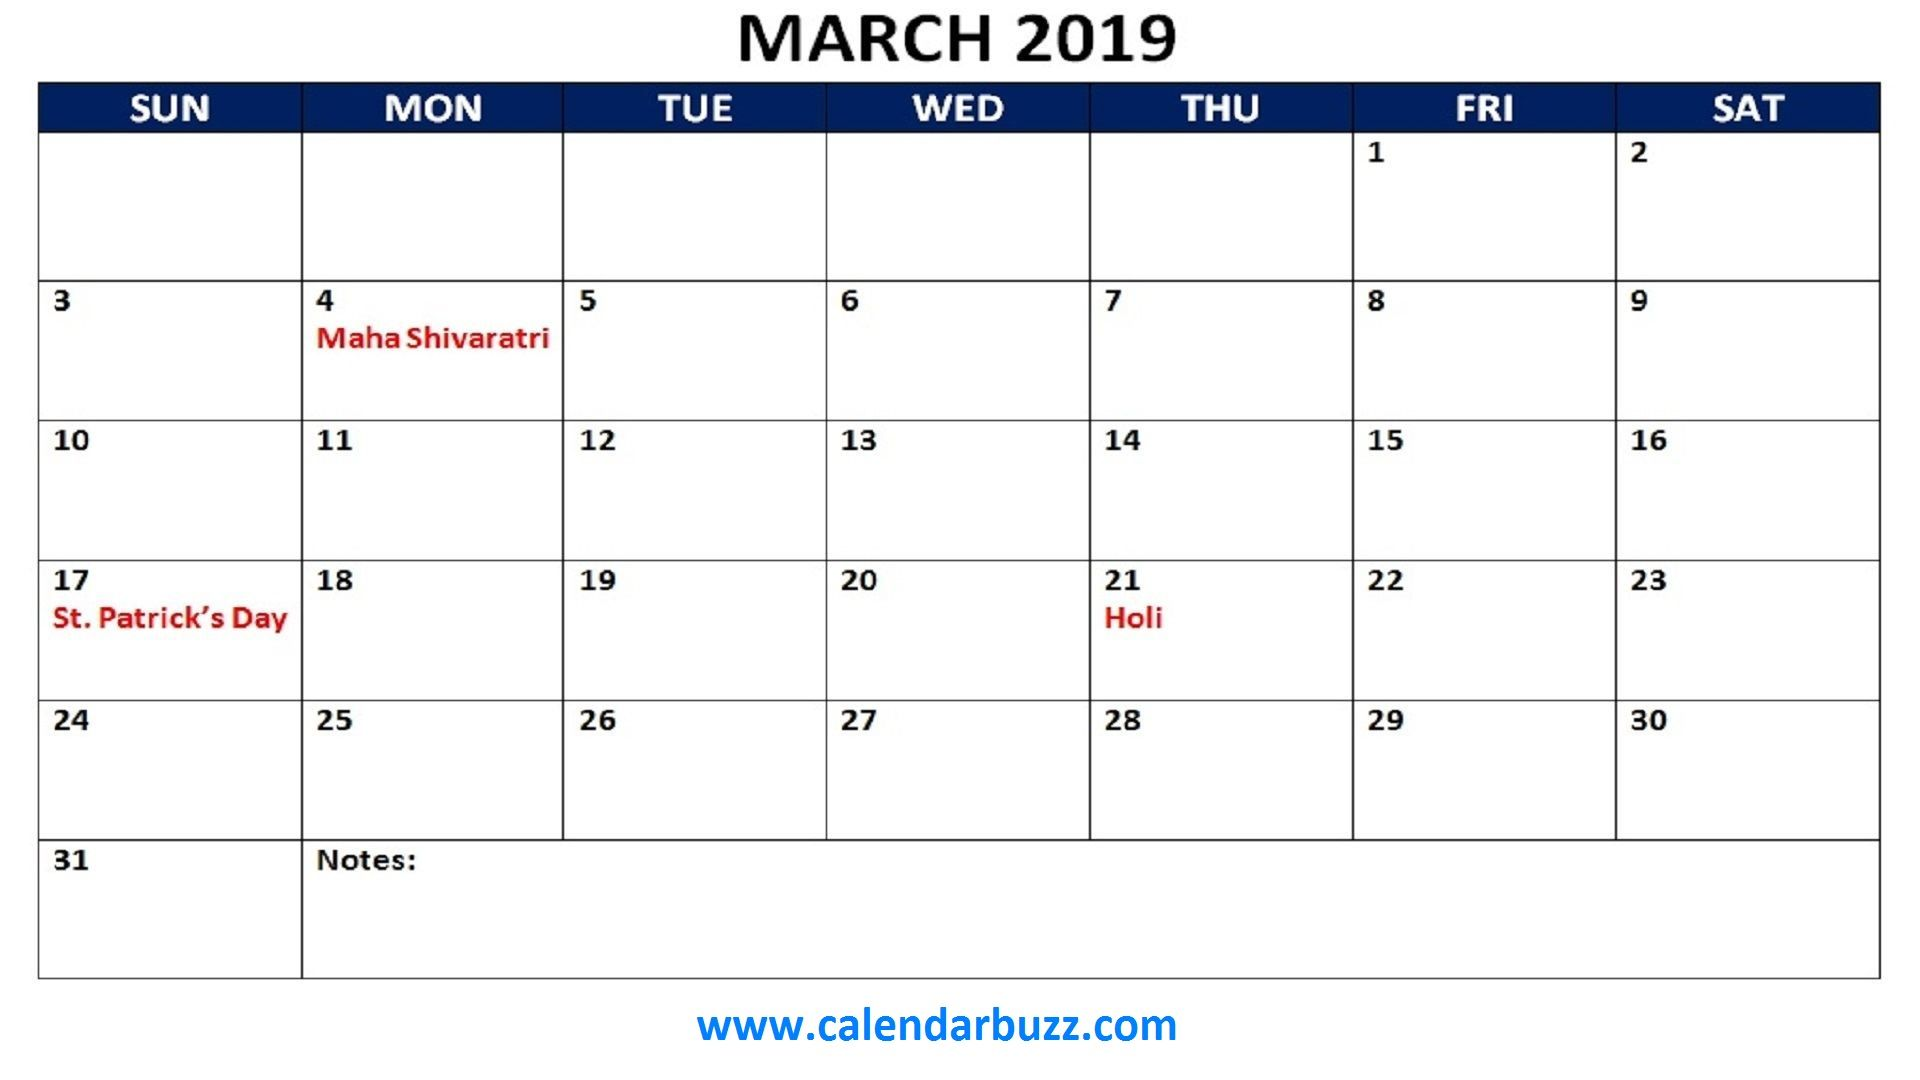 March 2019 Hindu Calendar